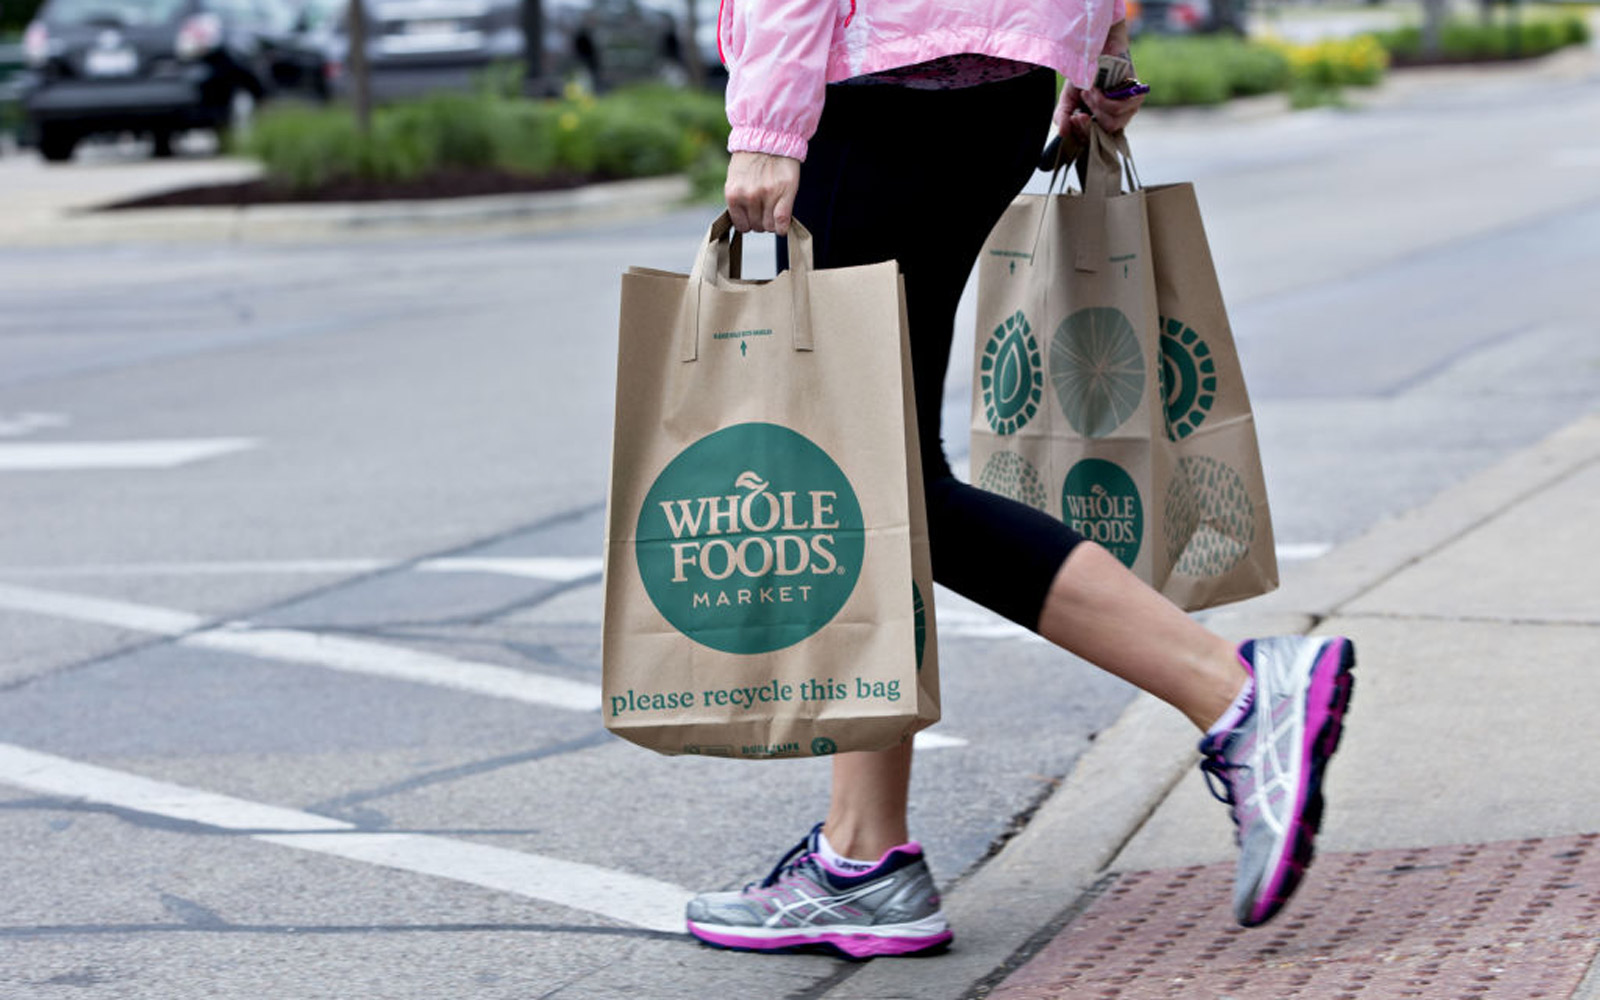 Amazon To Buy Whole Foods In $13.7 Billion Bet On Groceries